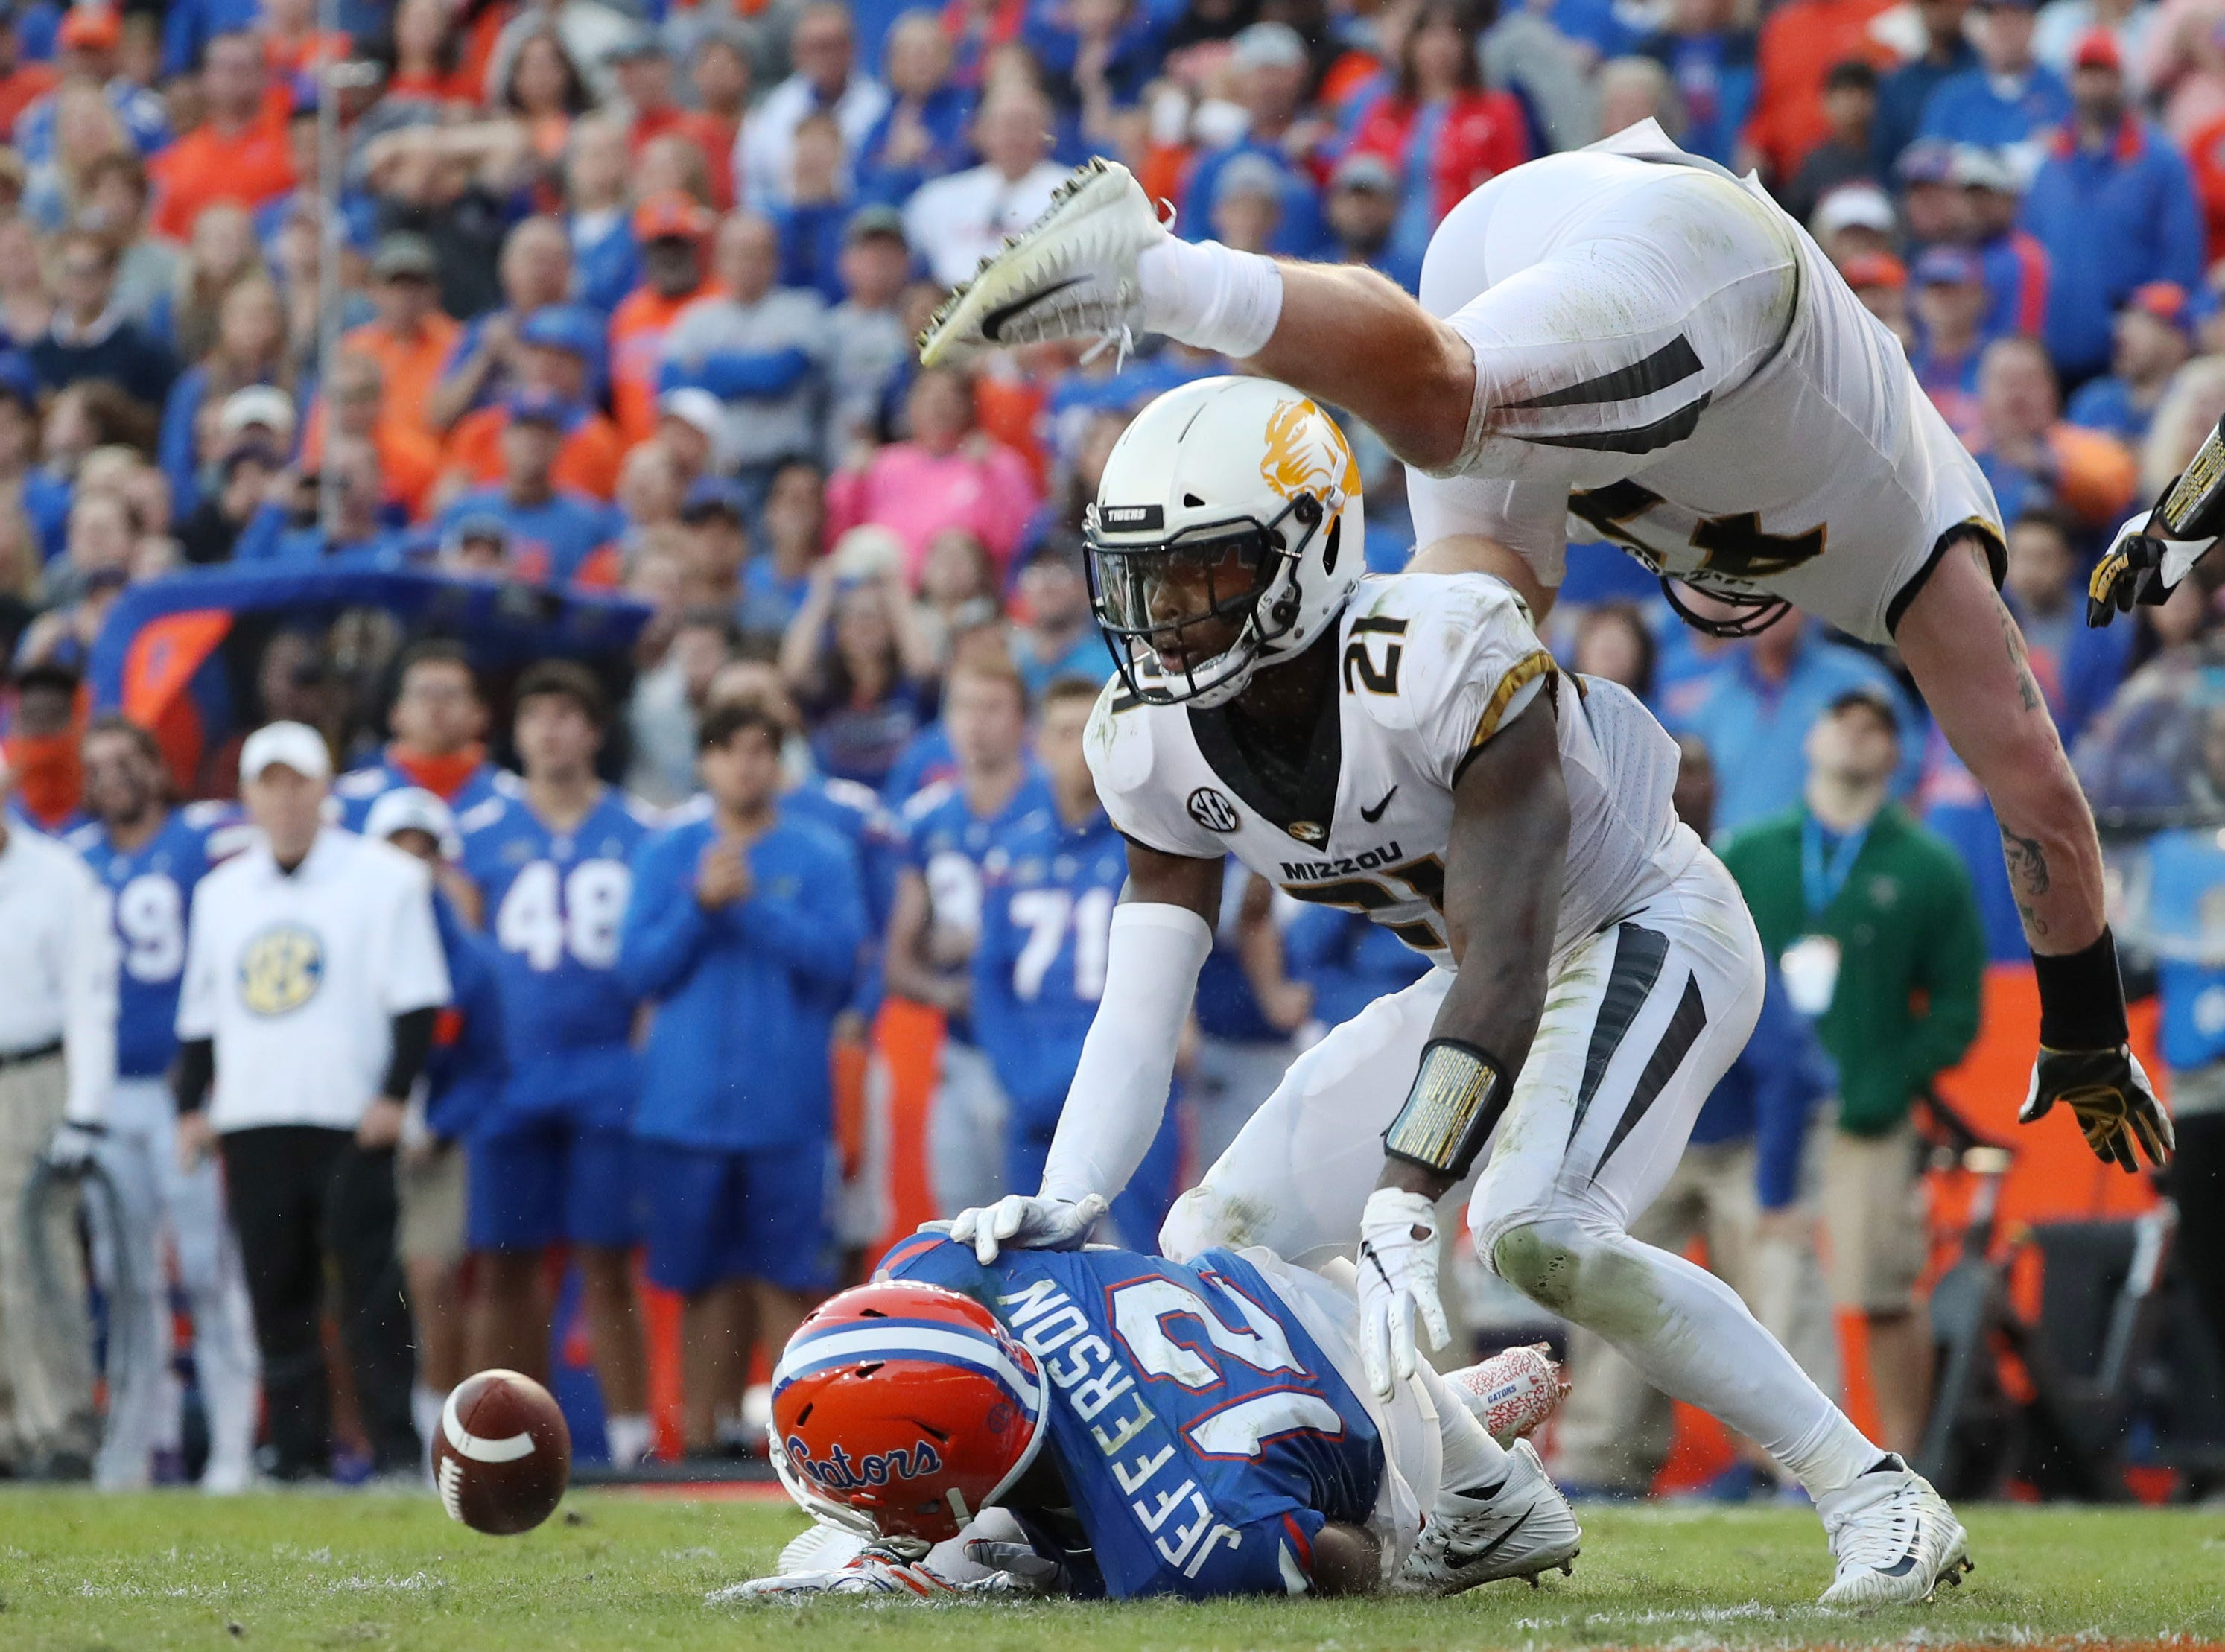 Missouri Tigers defensive back Christian Holmes (21) and linebacker Cale Garrett (47) breaks up a pass indented for Florida Gators wide receiver Van Jefferson (12) during the second half at Ben Hill Griffin Stadium.